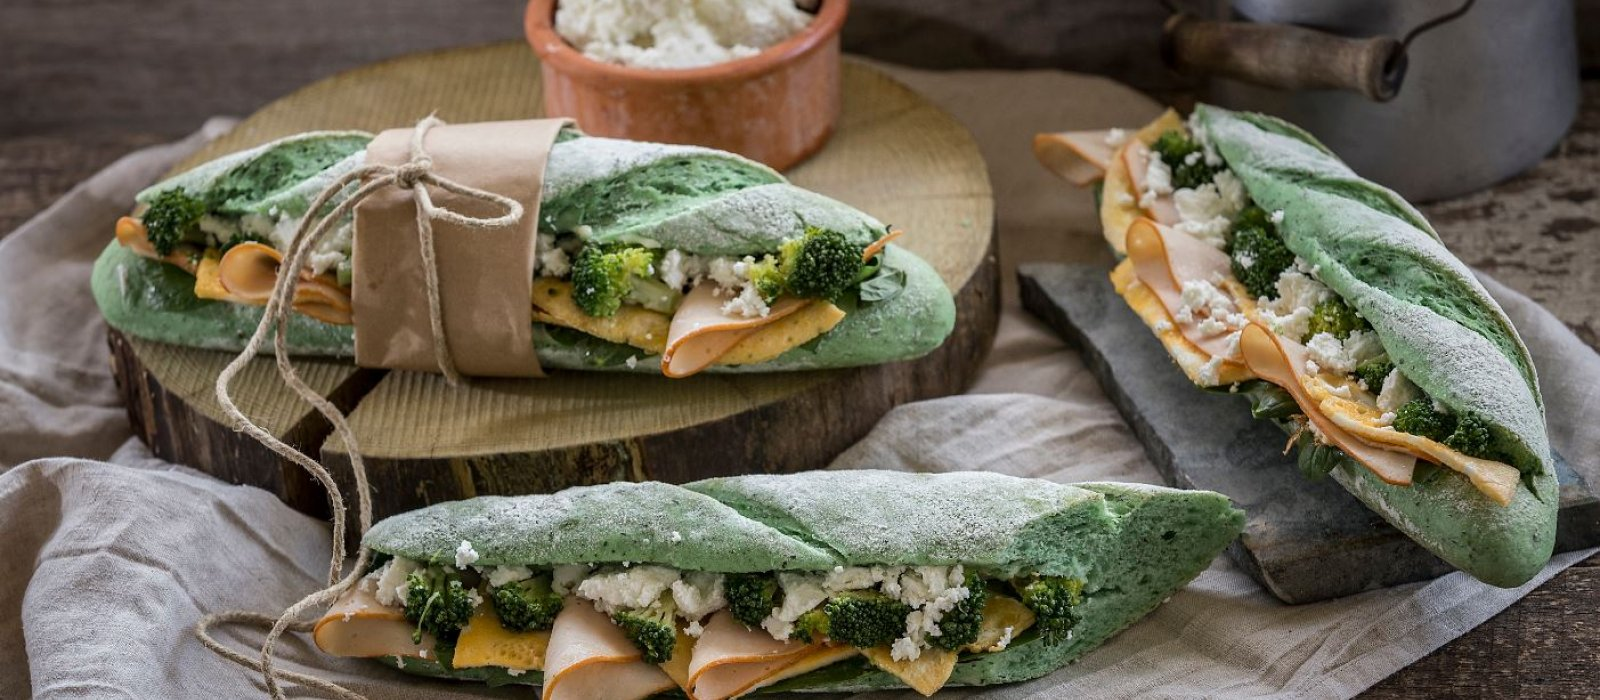 <span>Baguette with Green Tea, Smoked Turkey, Broccoli &amp; Ricotta</span>